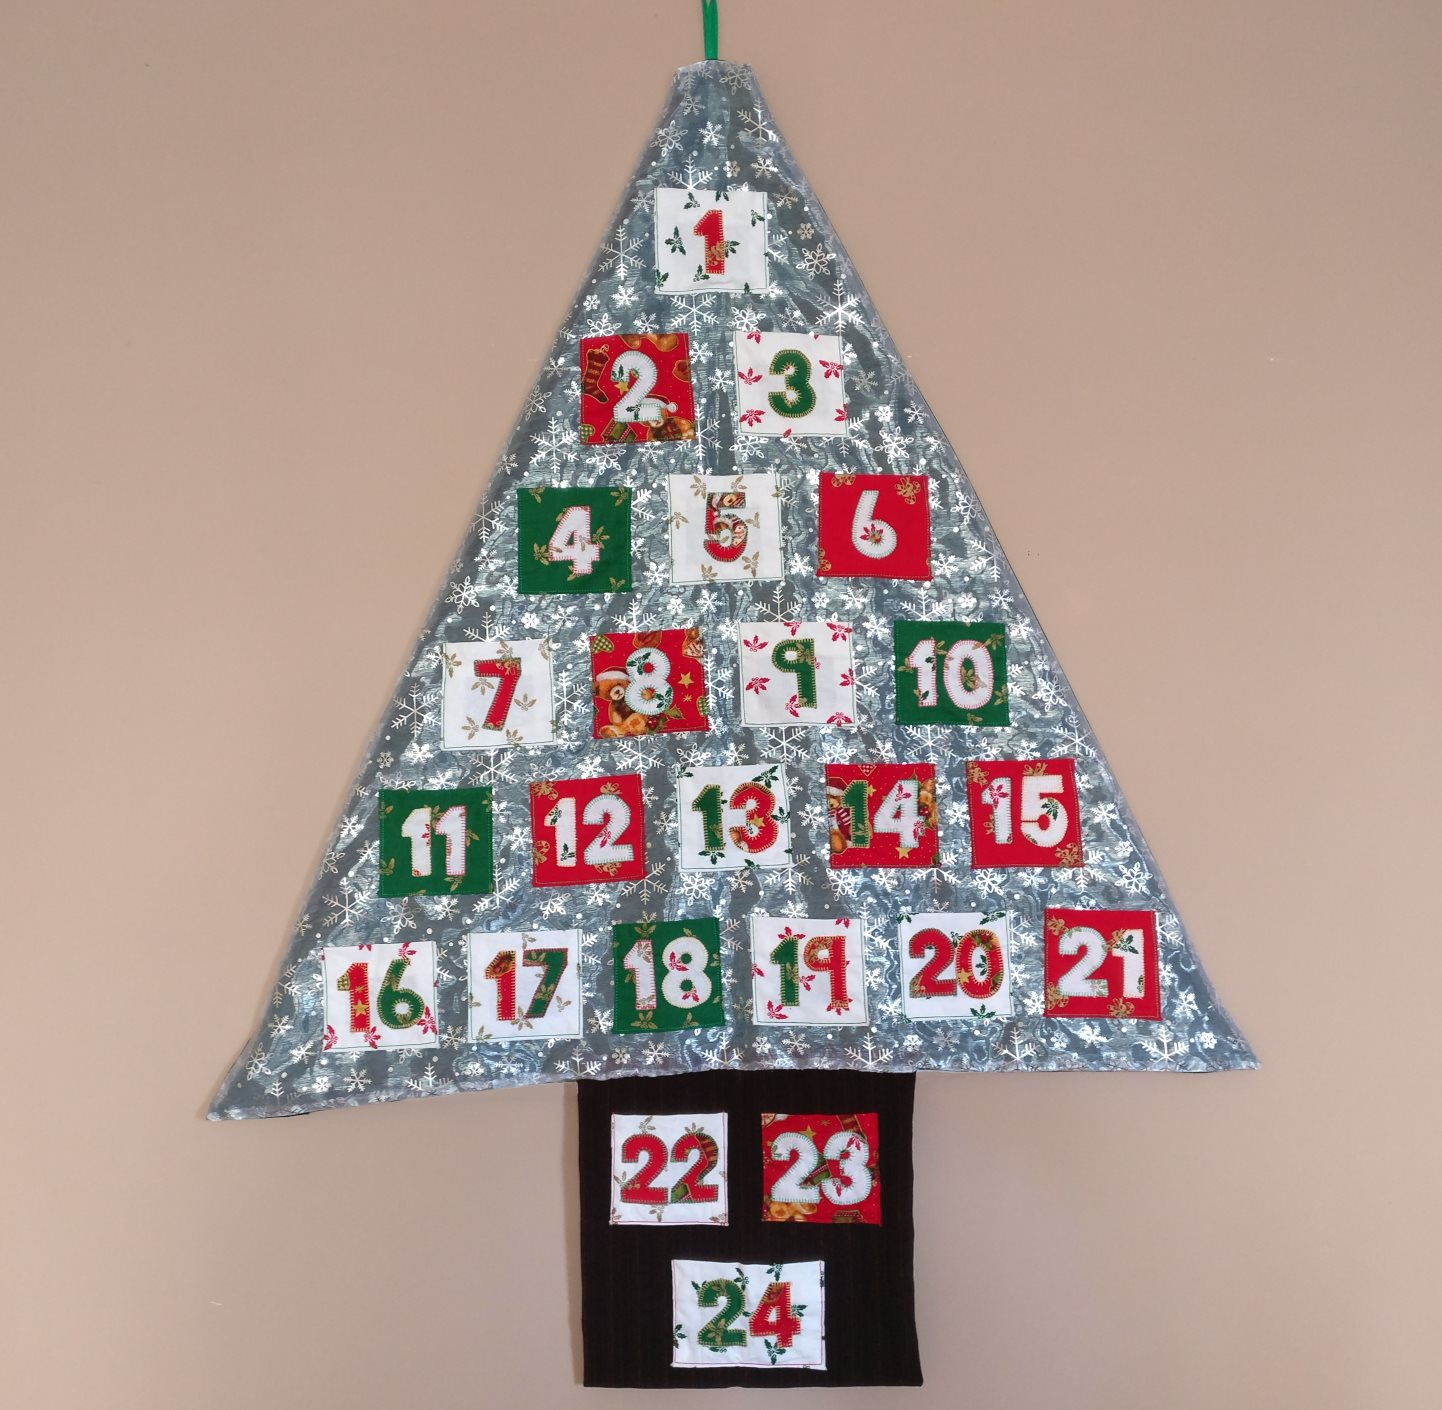 Finished Handmade Fabric Advent Calendar